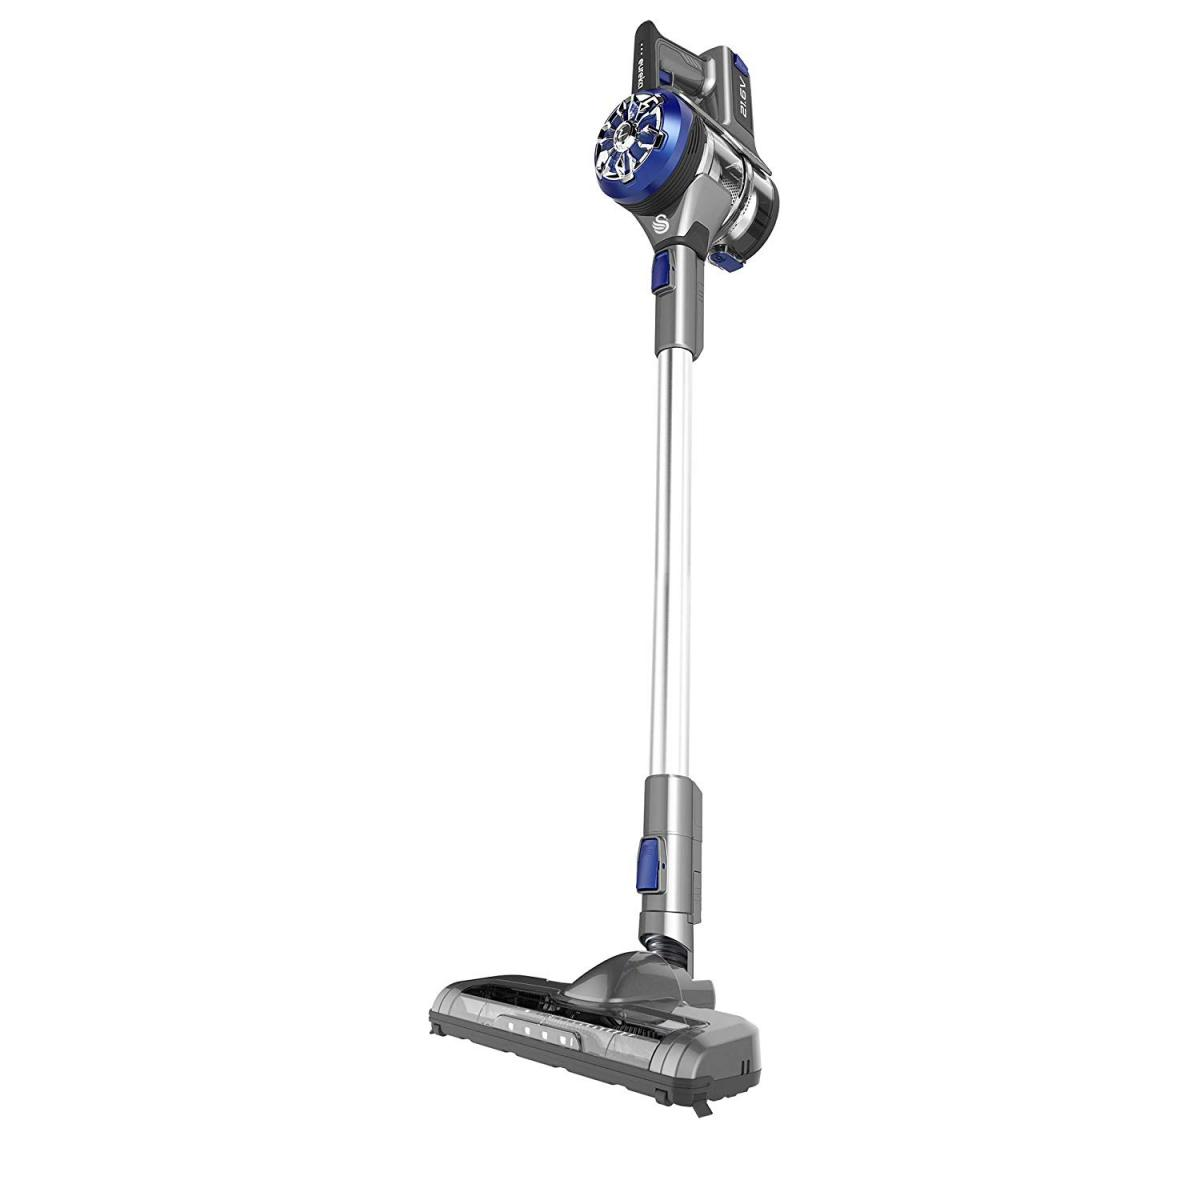 Power Turbo Cordless 3 in 1 Vacuum – Now Only £139.00